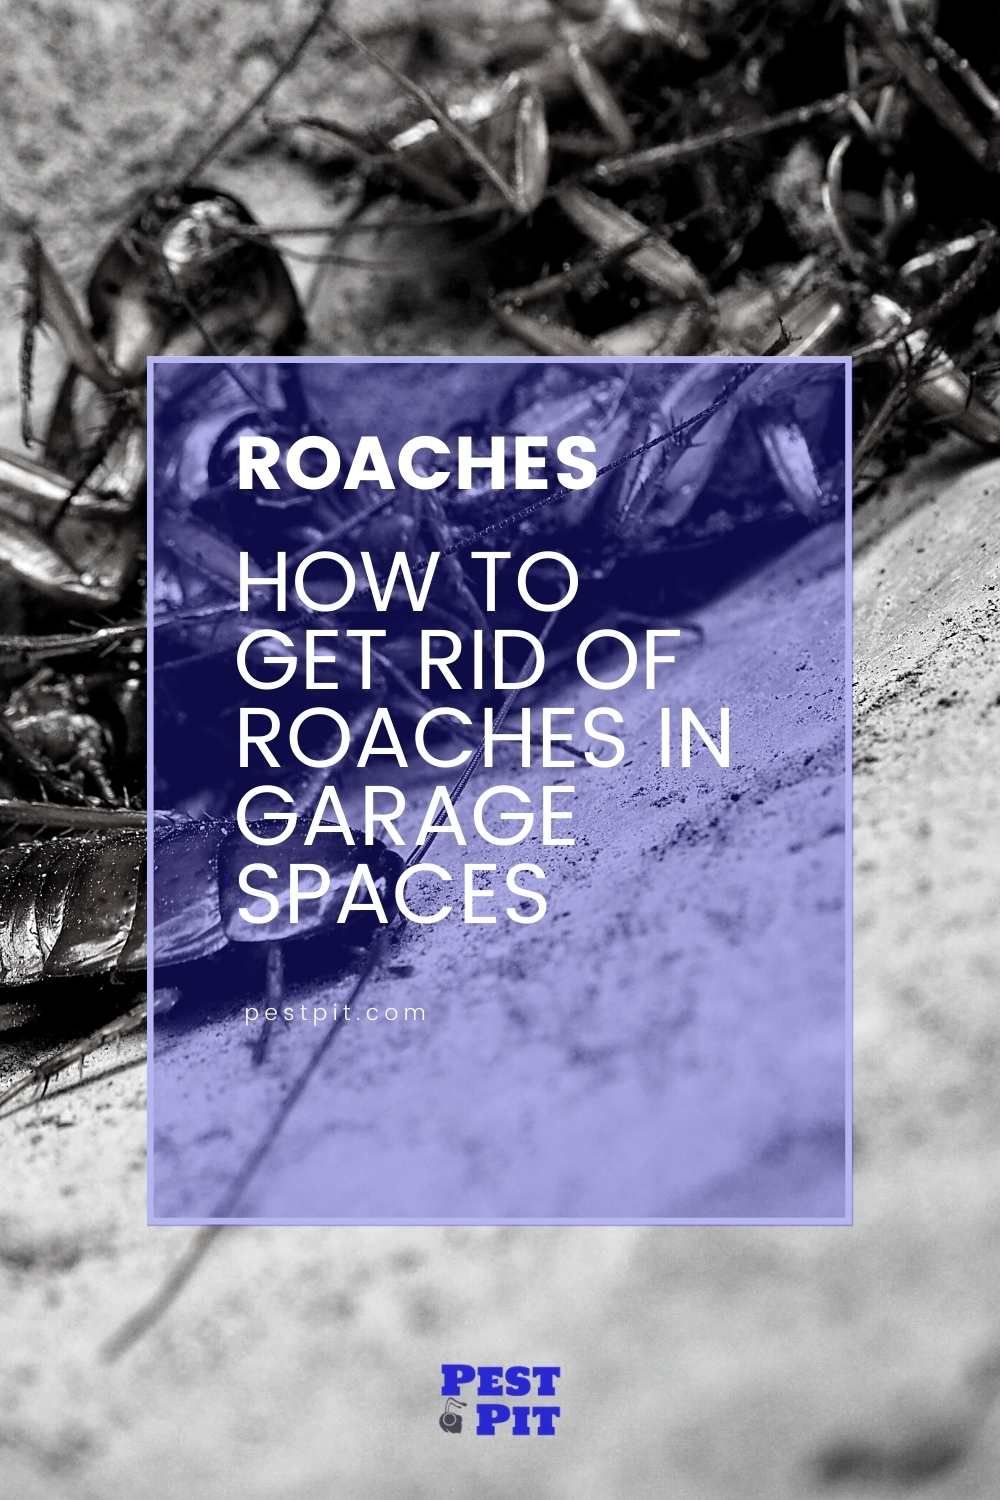 How To Get Rid Of Roaches In Garage Spaces